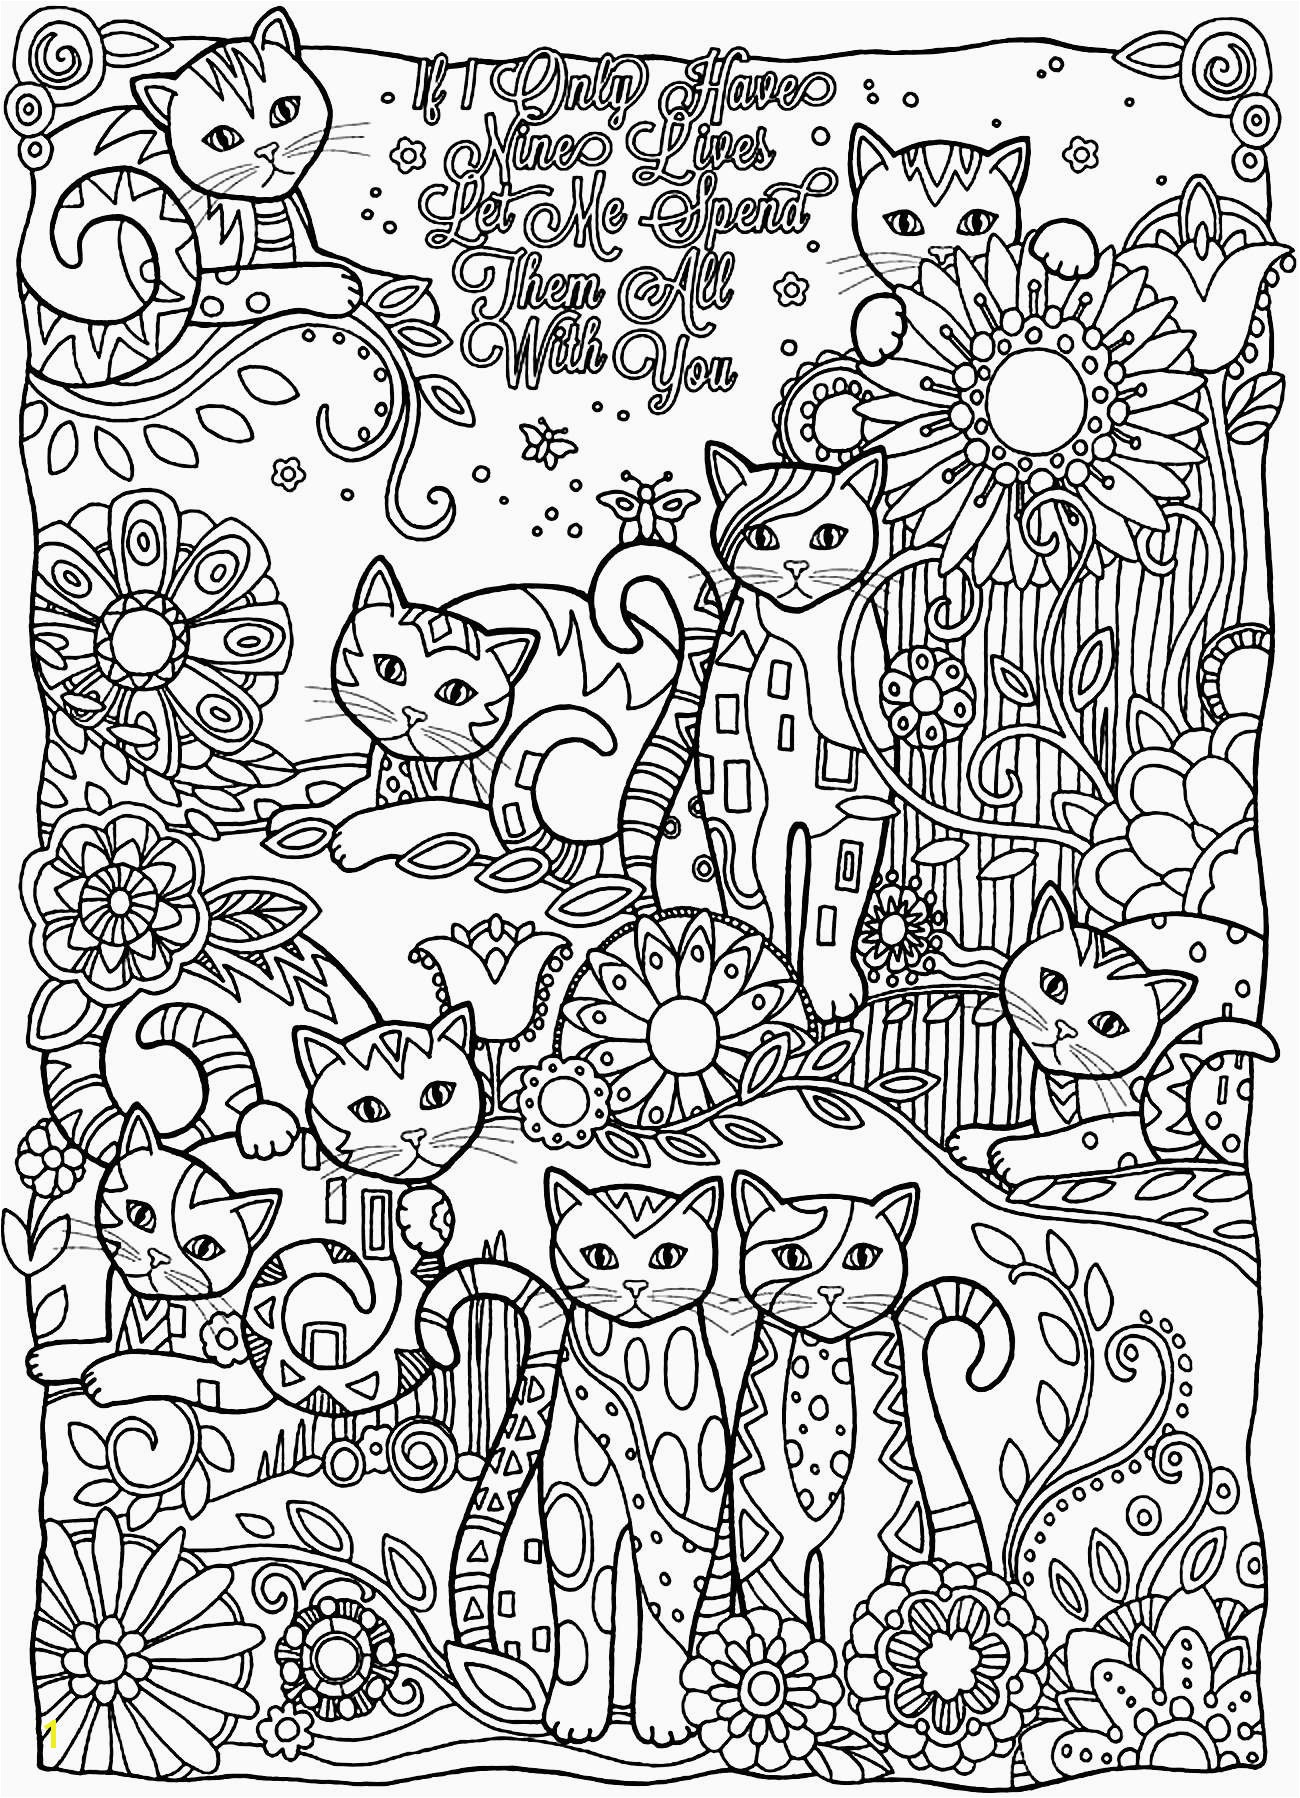 Christmas Coloring Pages Religious Christmas Coloring Pages Printable Luxury Cool Od Dog Coloring Pages